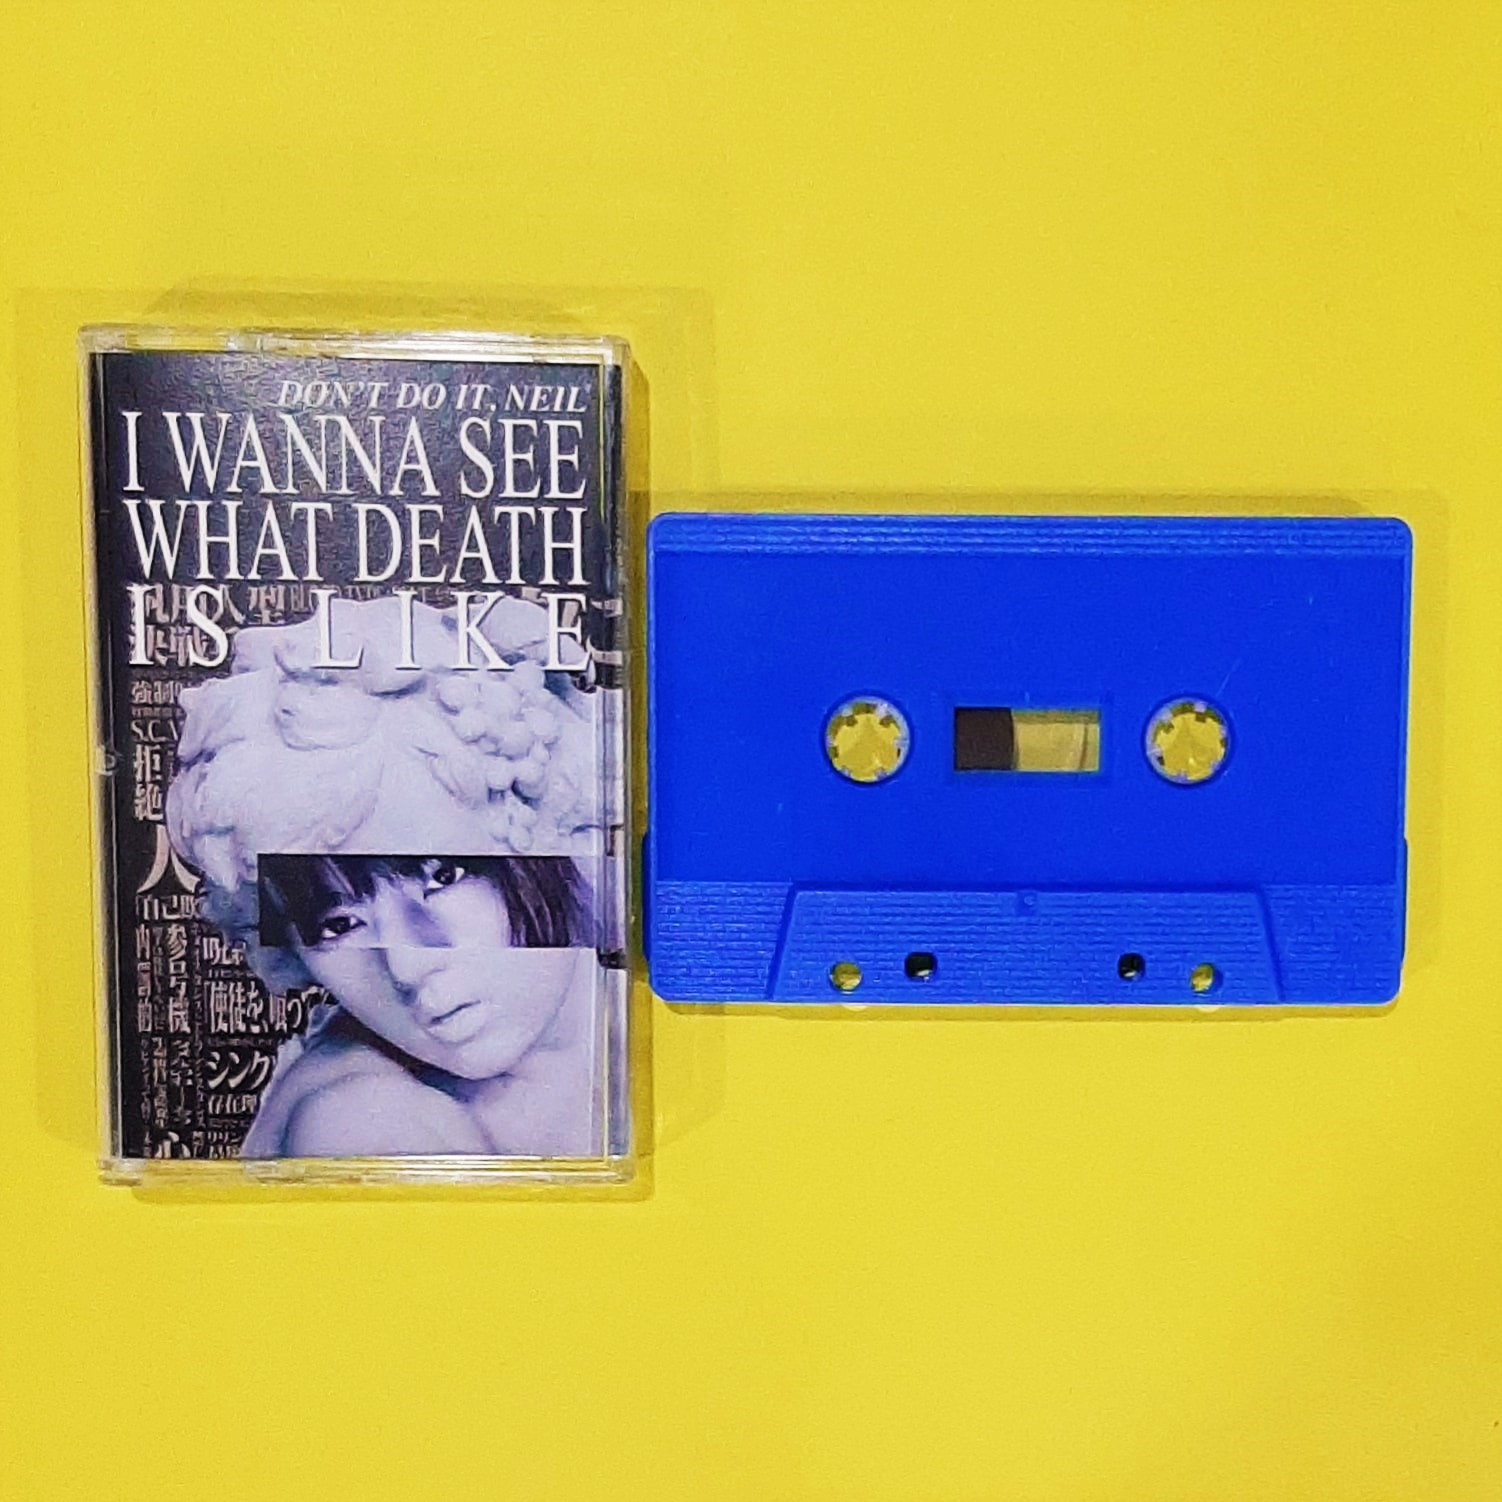 Don't do it, Neil -  I WANNA SEE WHAT DEATH IS LIKE (Grimalkin Records)